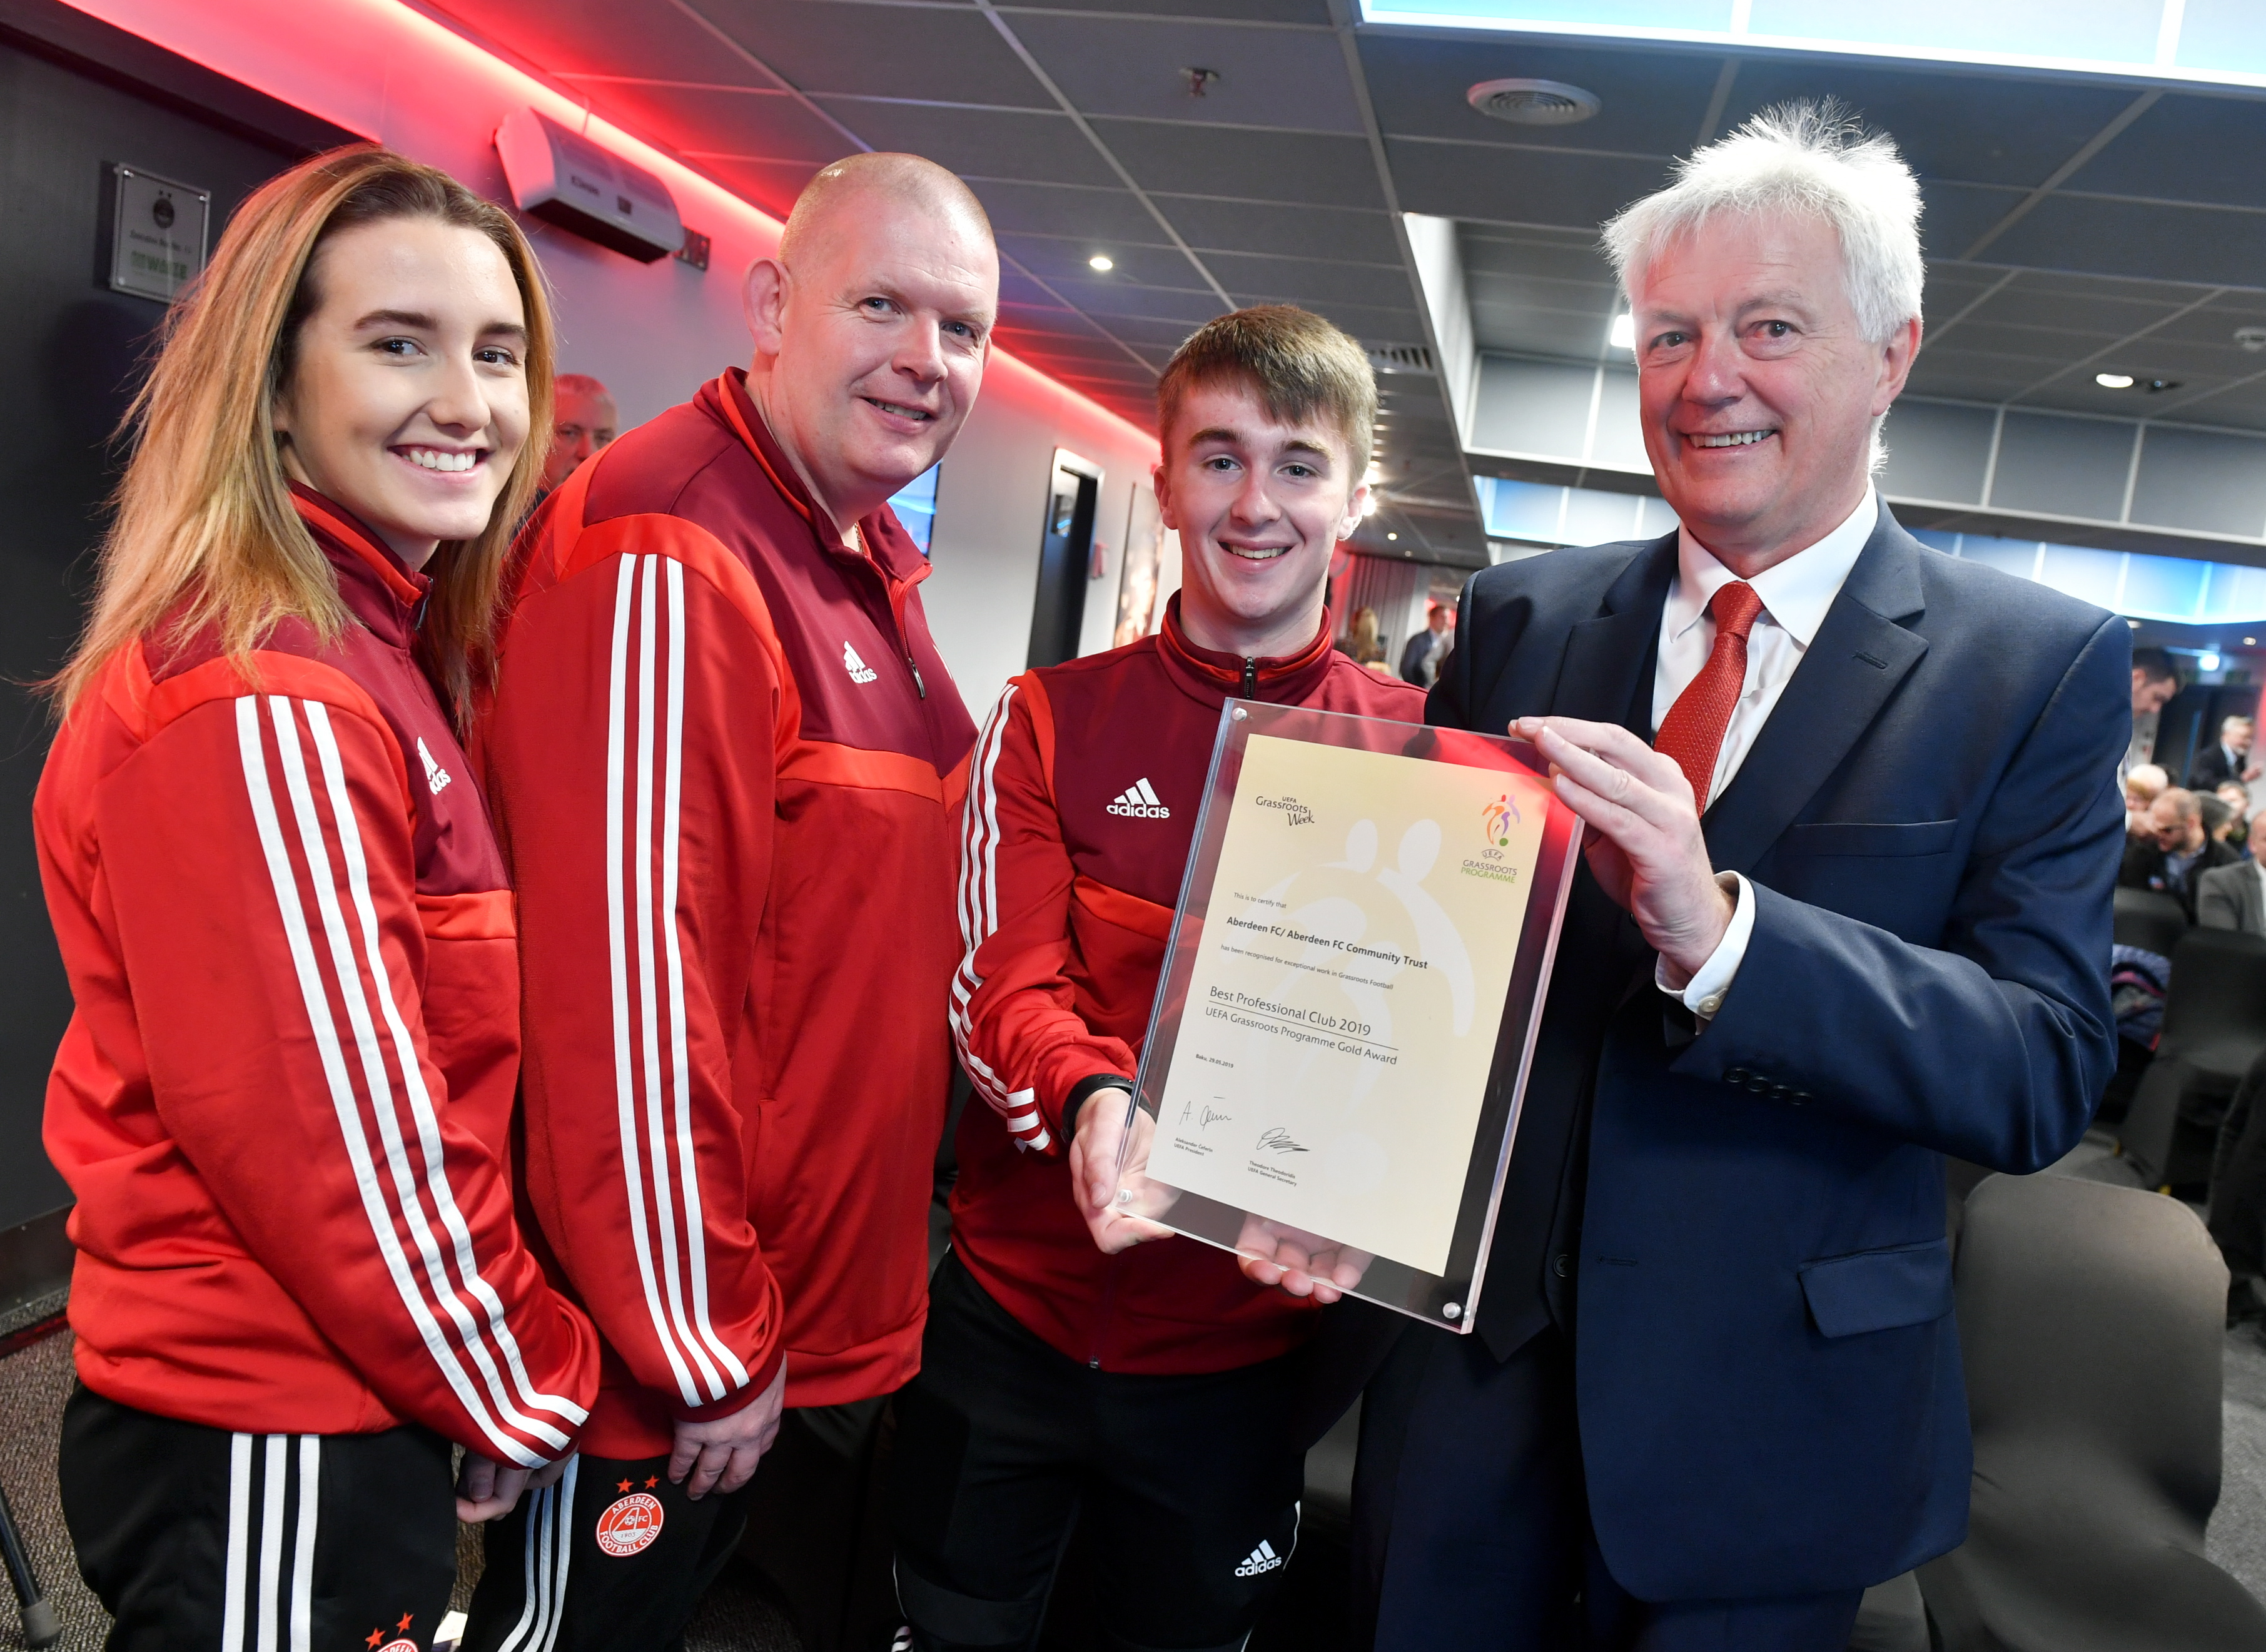 Duncan Skinner right, was chairman of the AFCCT. He is pictured with volunteers from left, Jenna McDonald, Stephen Harvey and Paul Davidson.